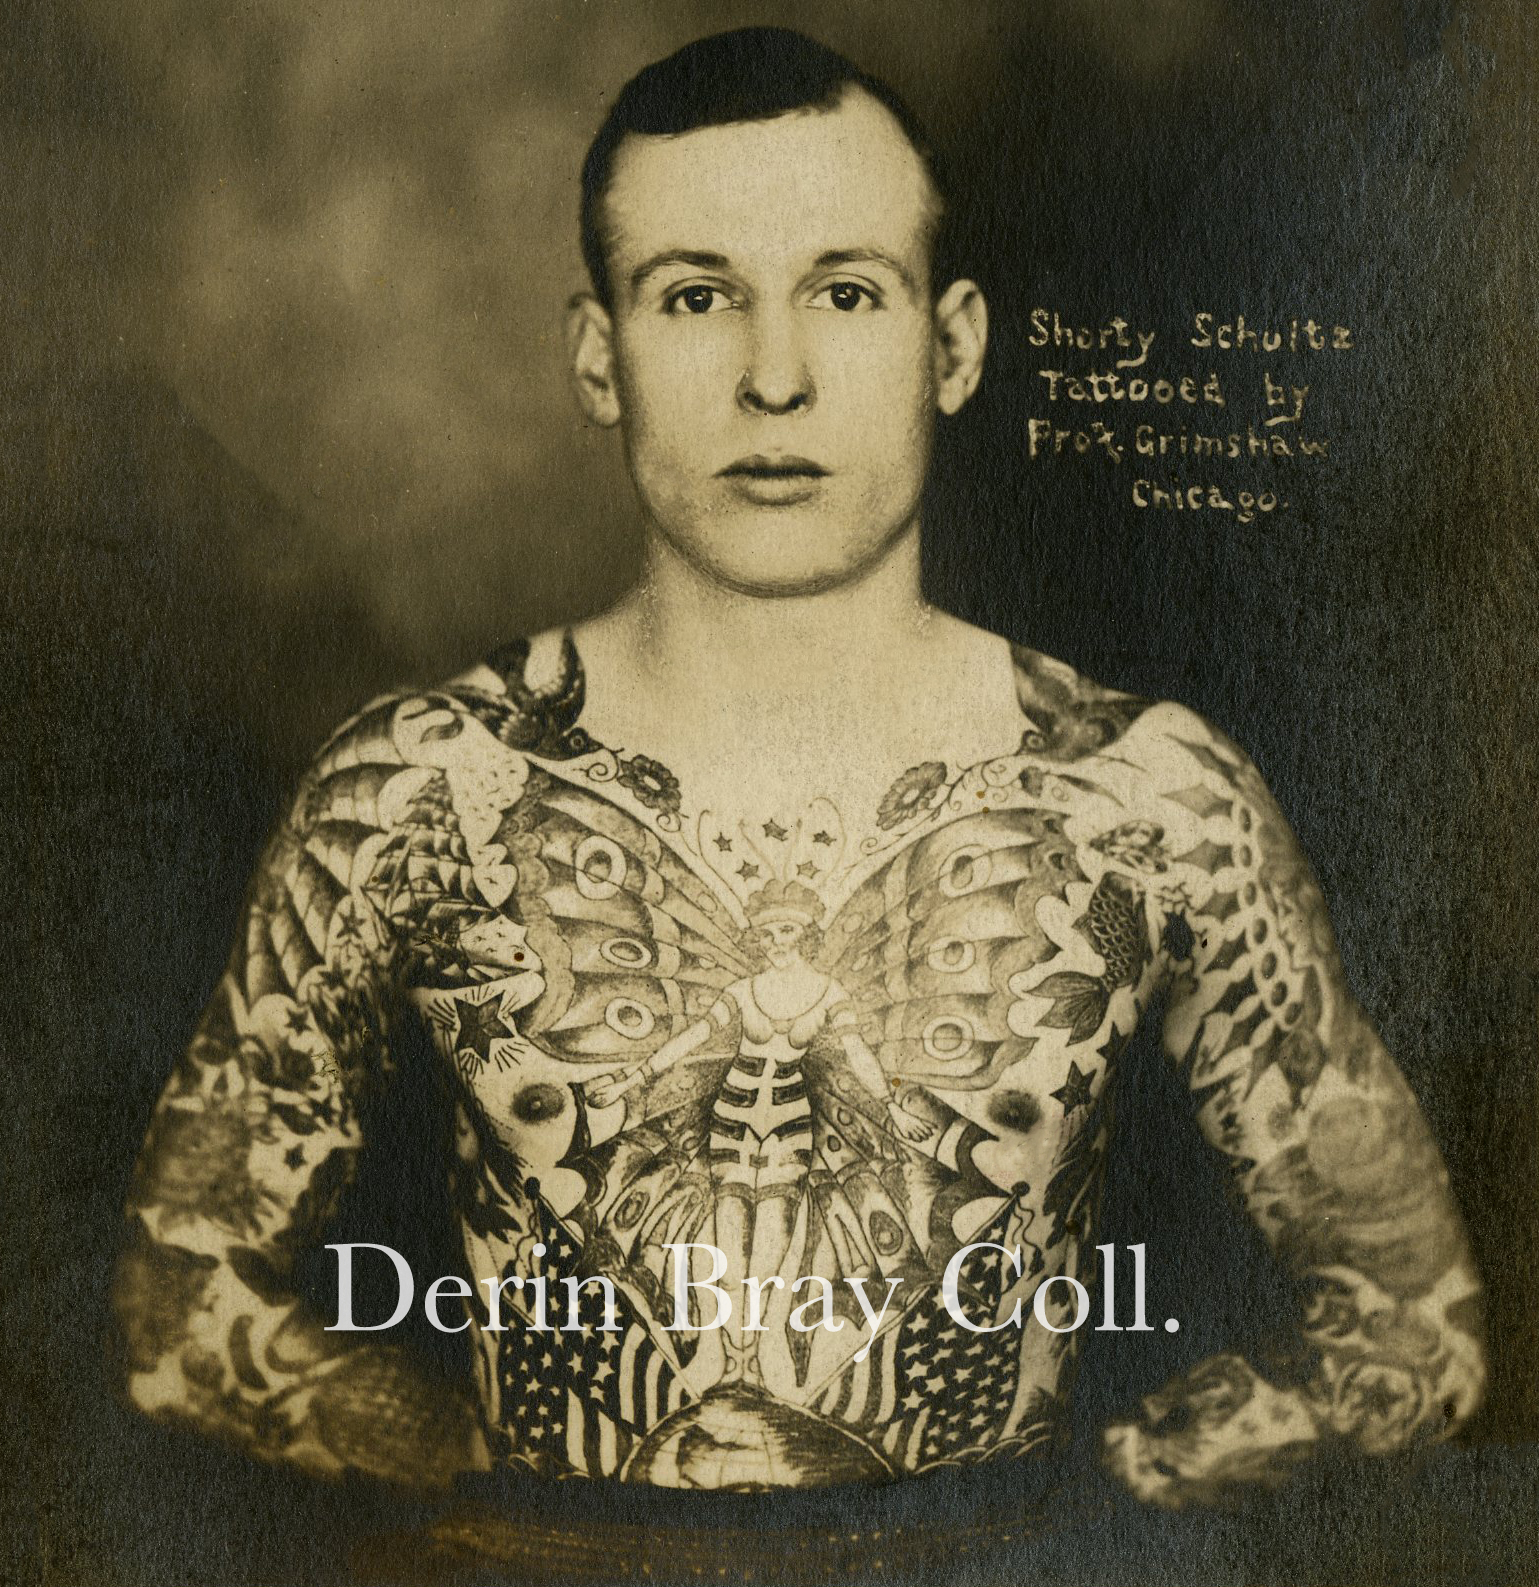 """Clarence """"Shorty"""" Schultz, tattooed by Prof. William Grimshaw, Chicago, ca. 1919.   Collection of Derin Bray"""